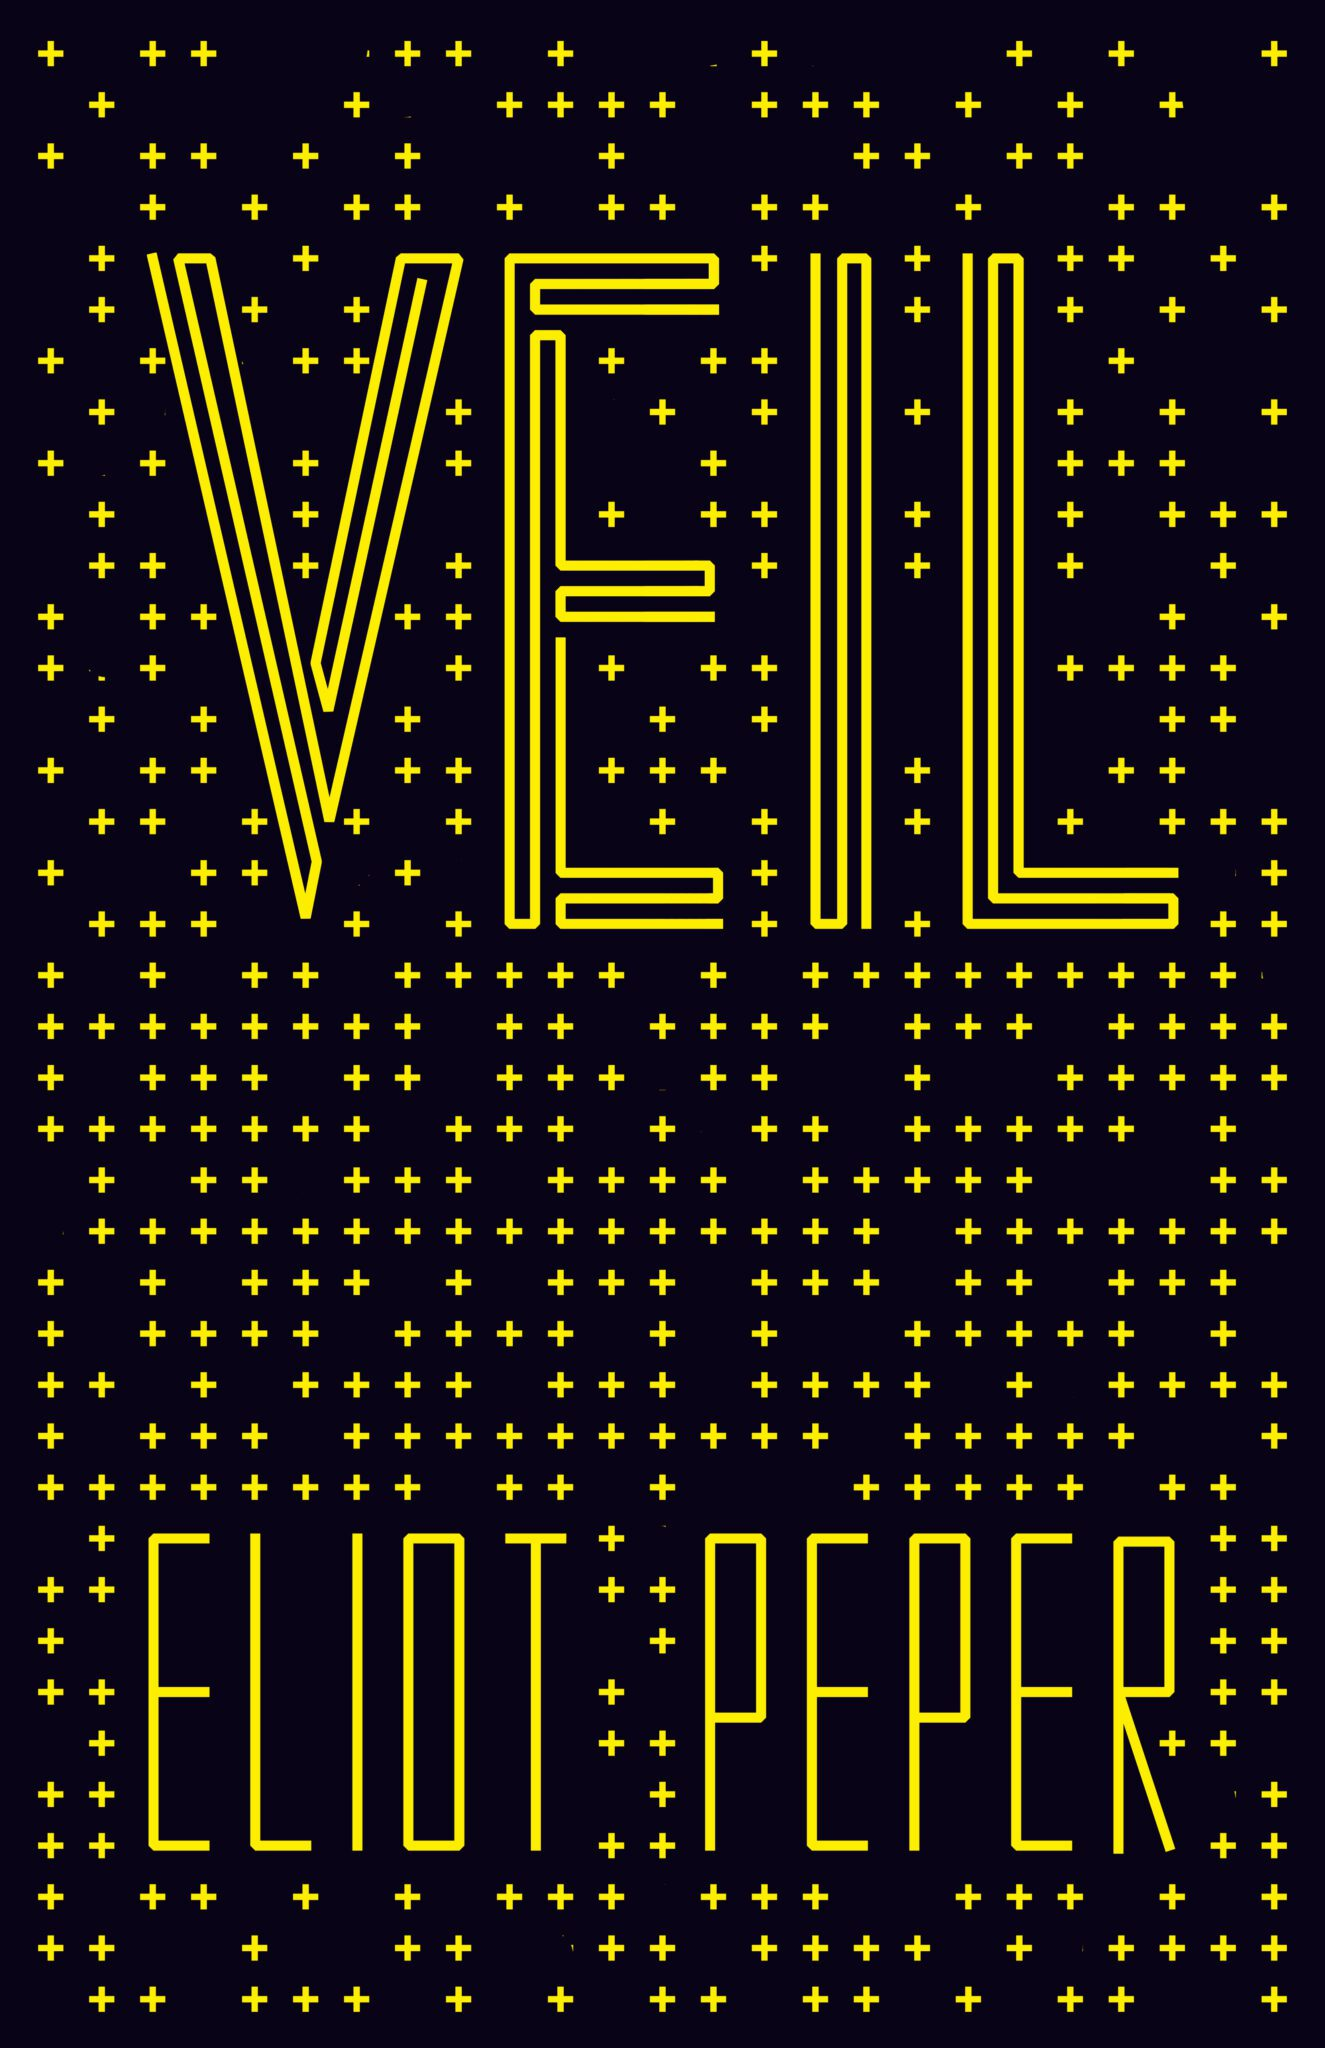 Eliot Peper: Five Things I Learned Writing Veil